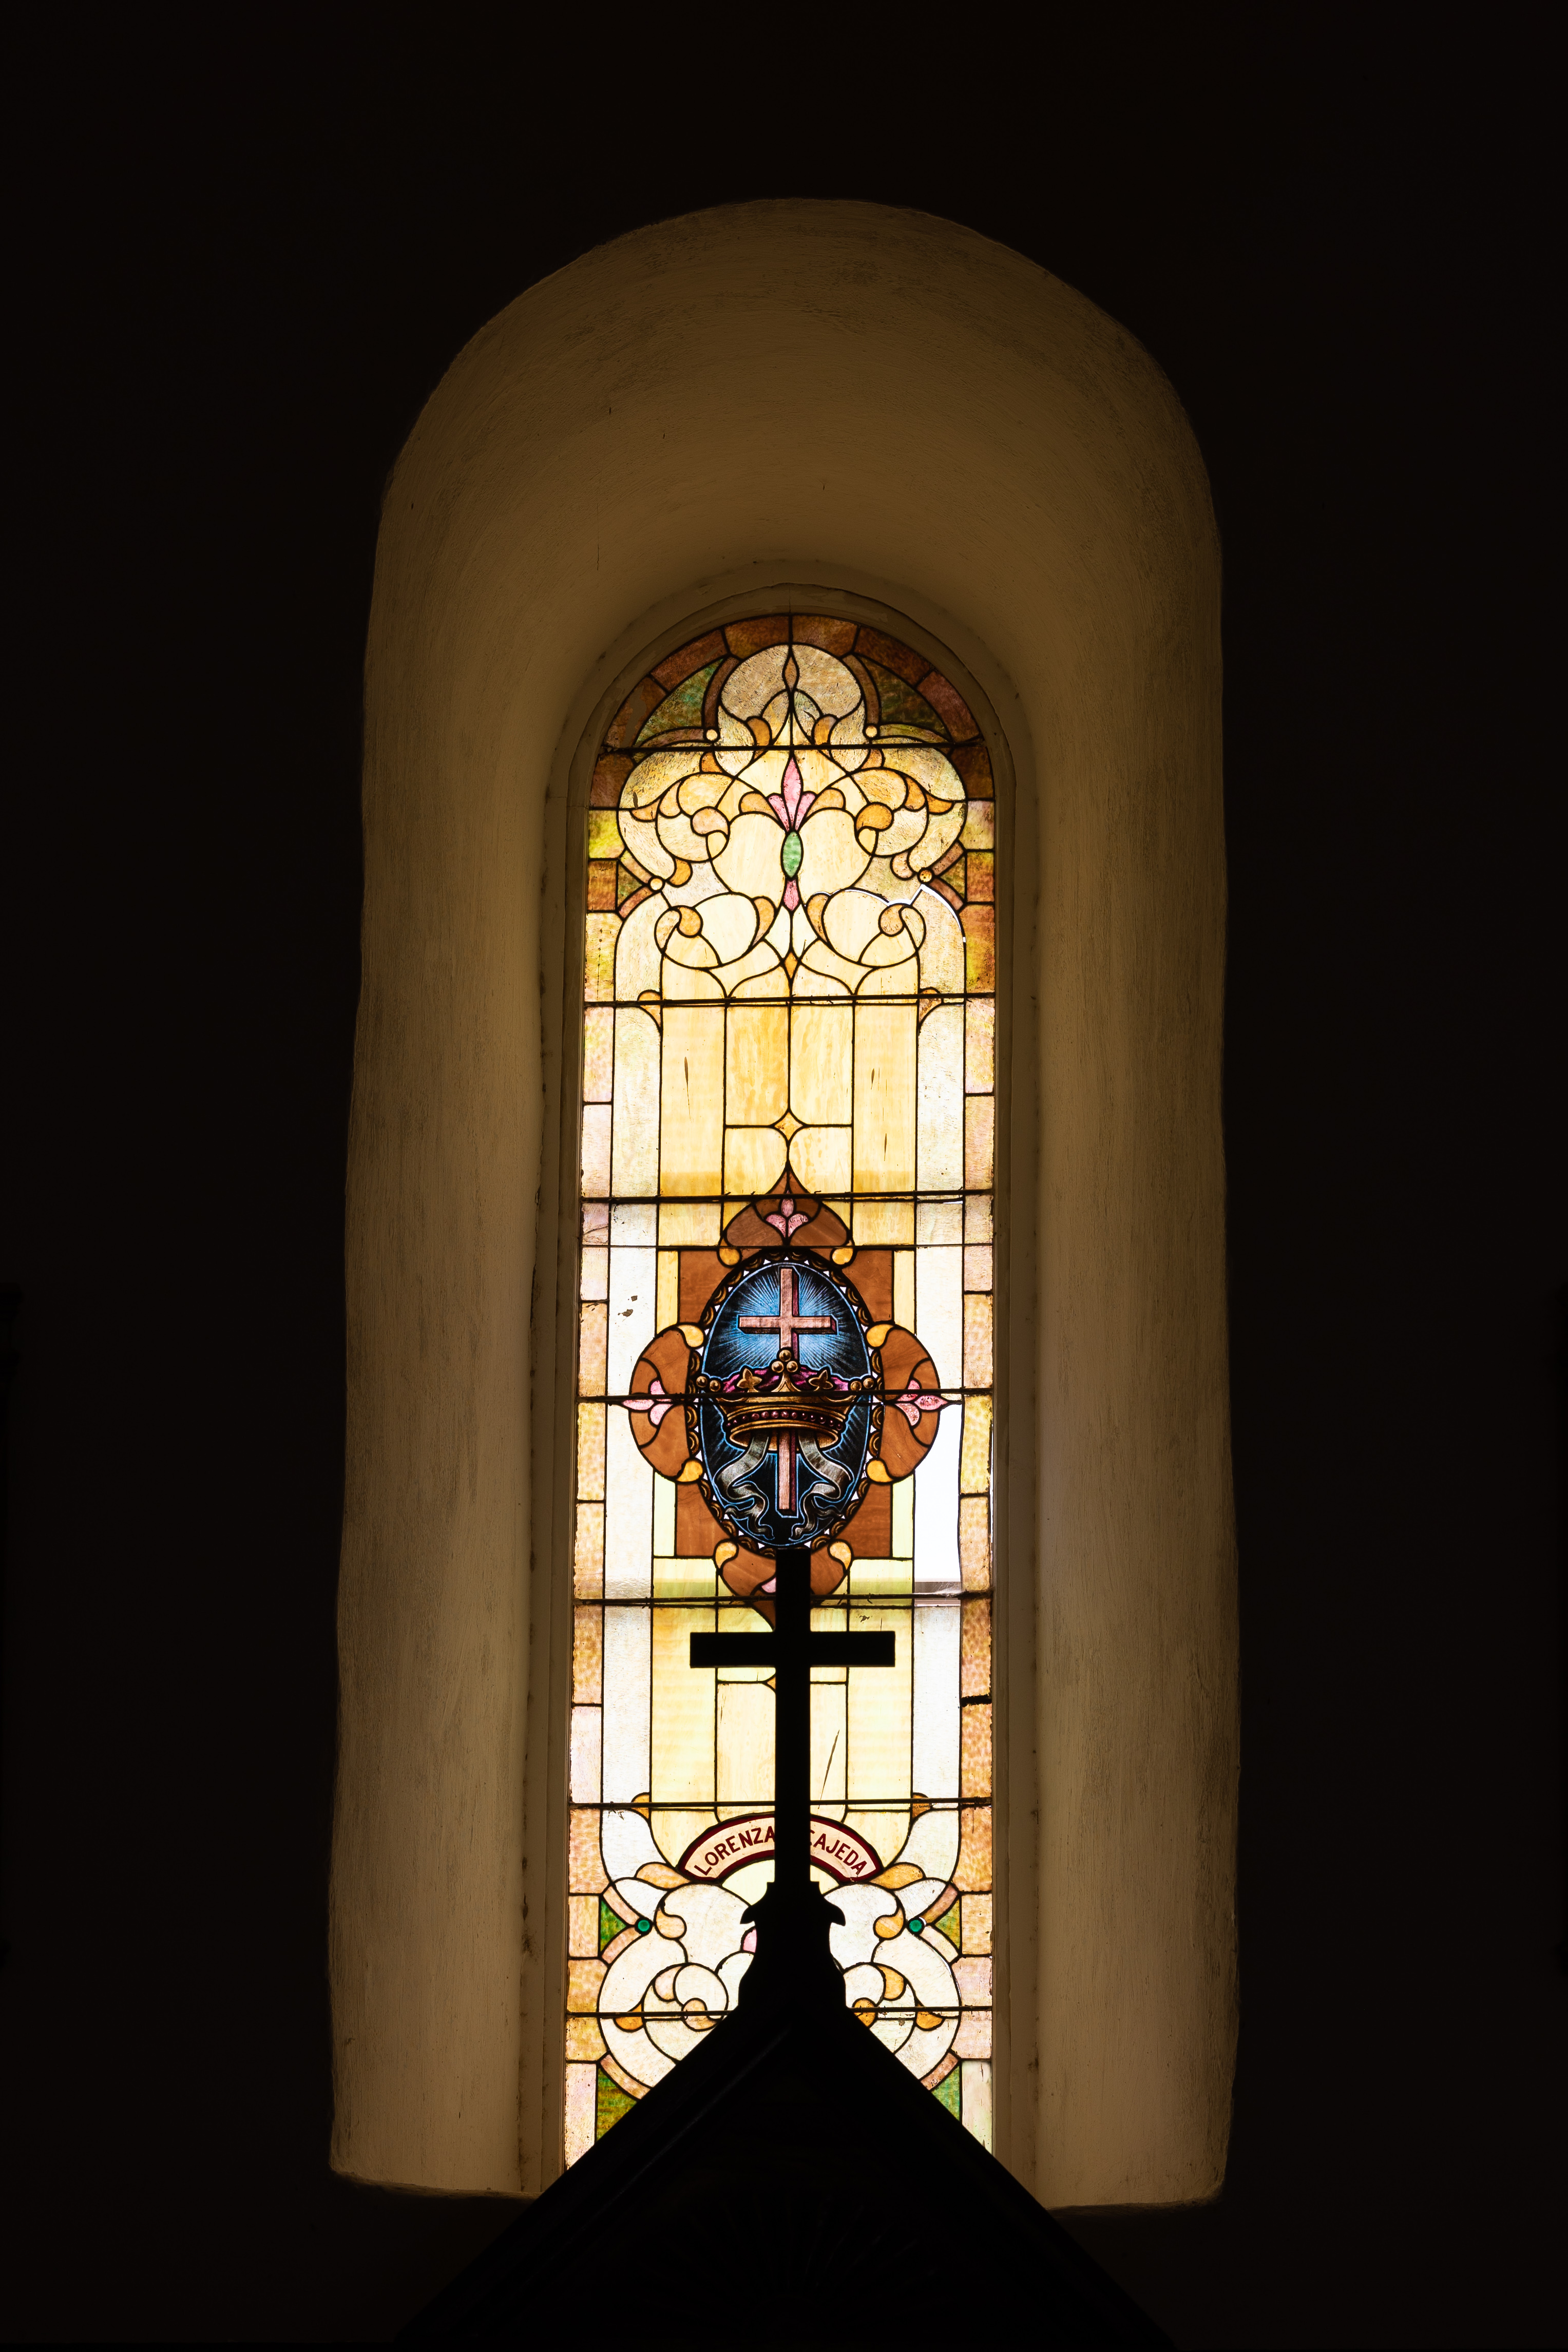 A cross backlight by a tall and thin, pale golden stained glass window featuring a crown and cross.